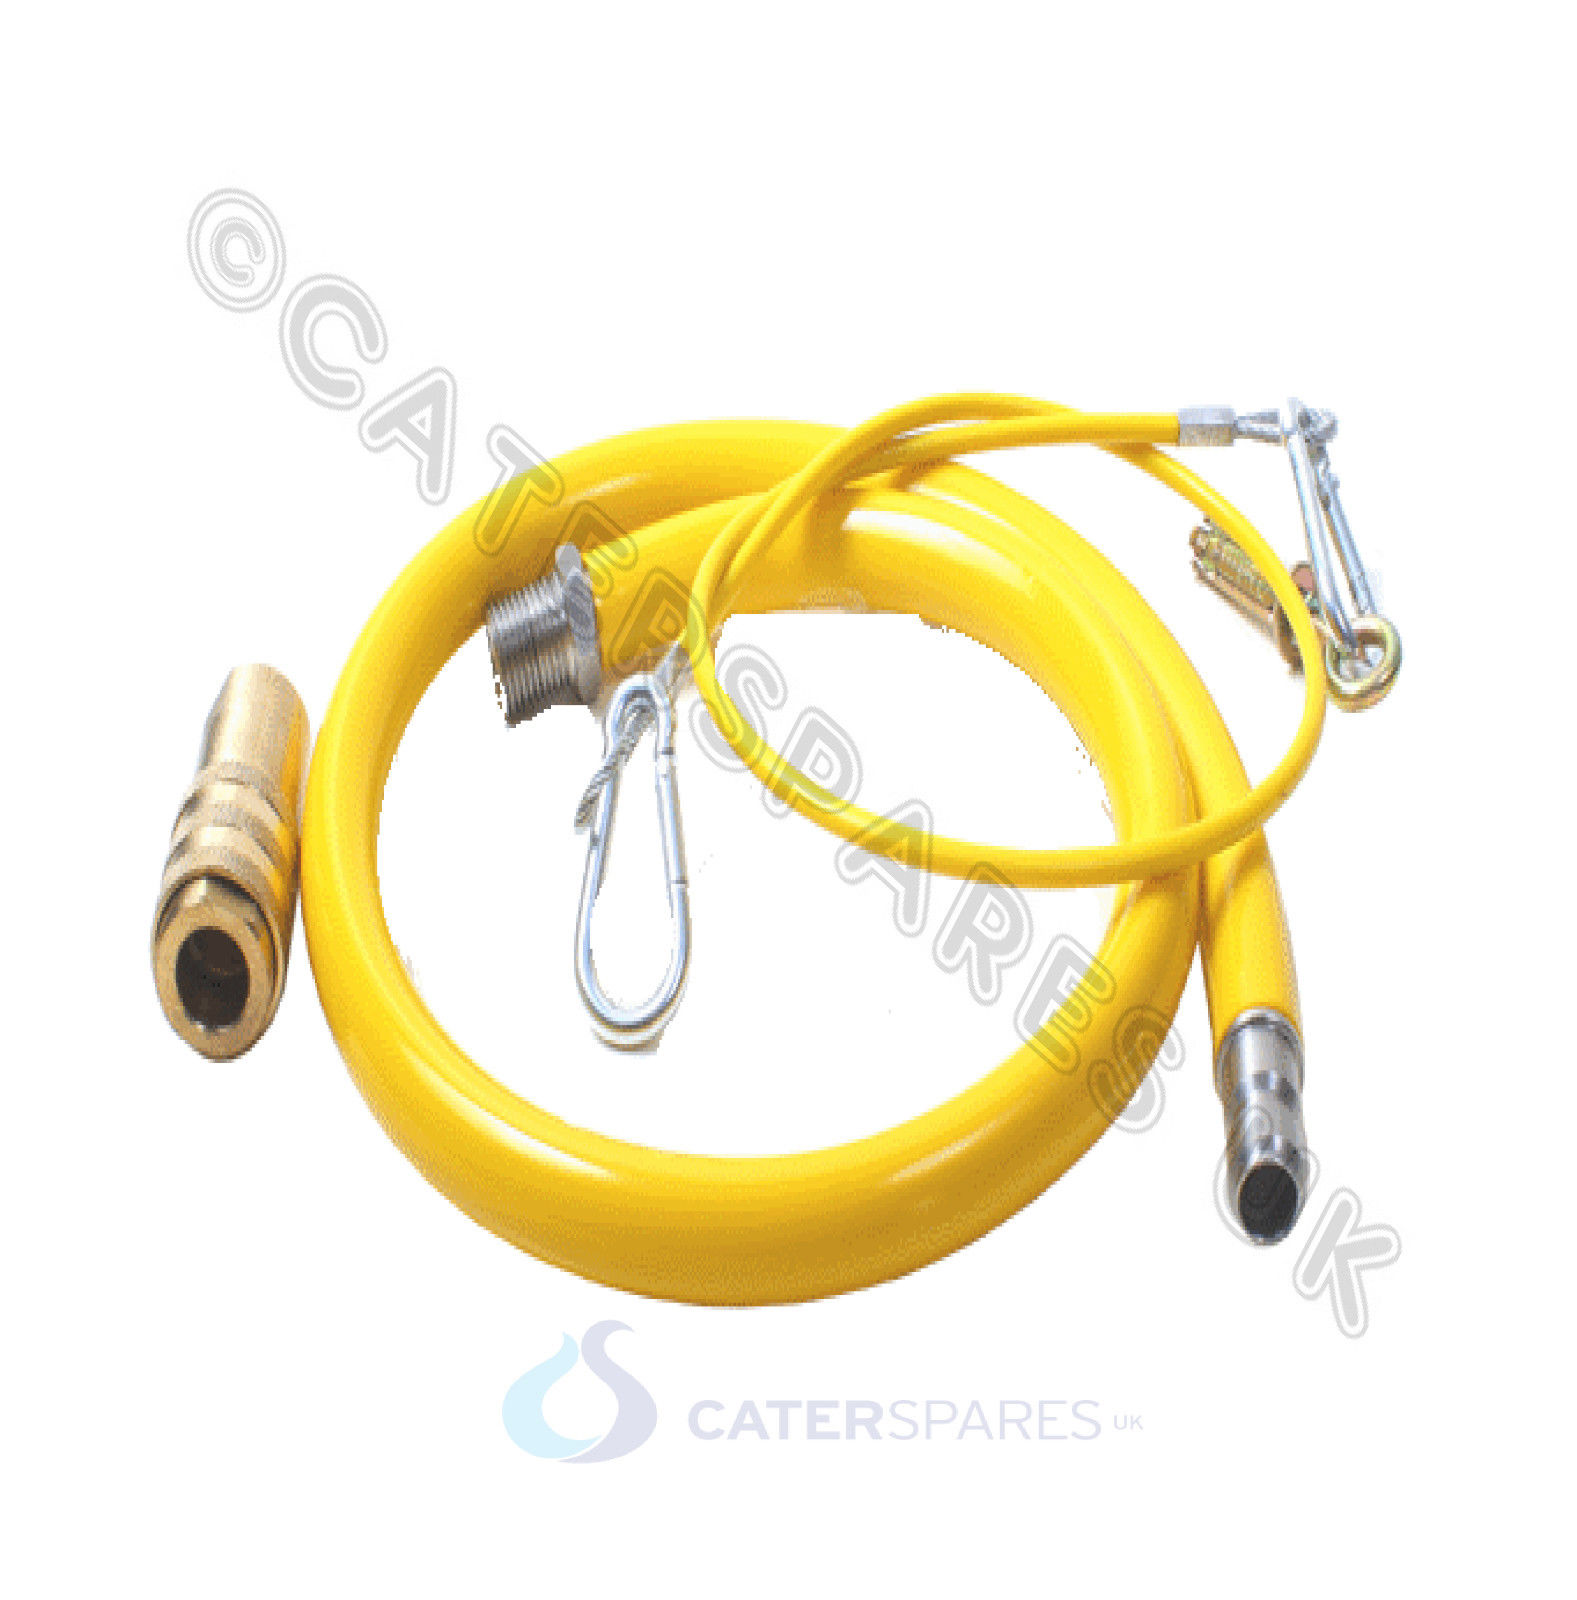 CATERFLEX CATERING YELLOW GAS HOSE PIPE 1/2 1.5 METER 1500MM 24 HR ...